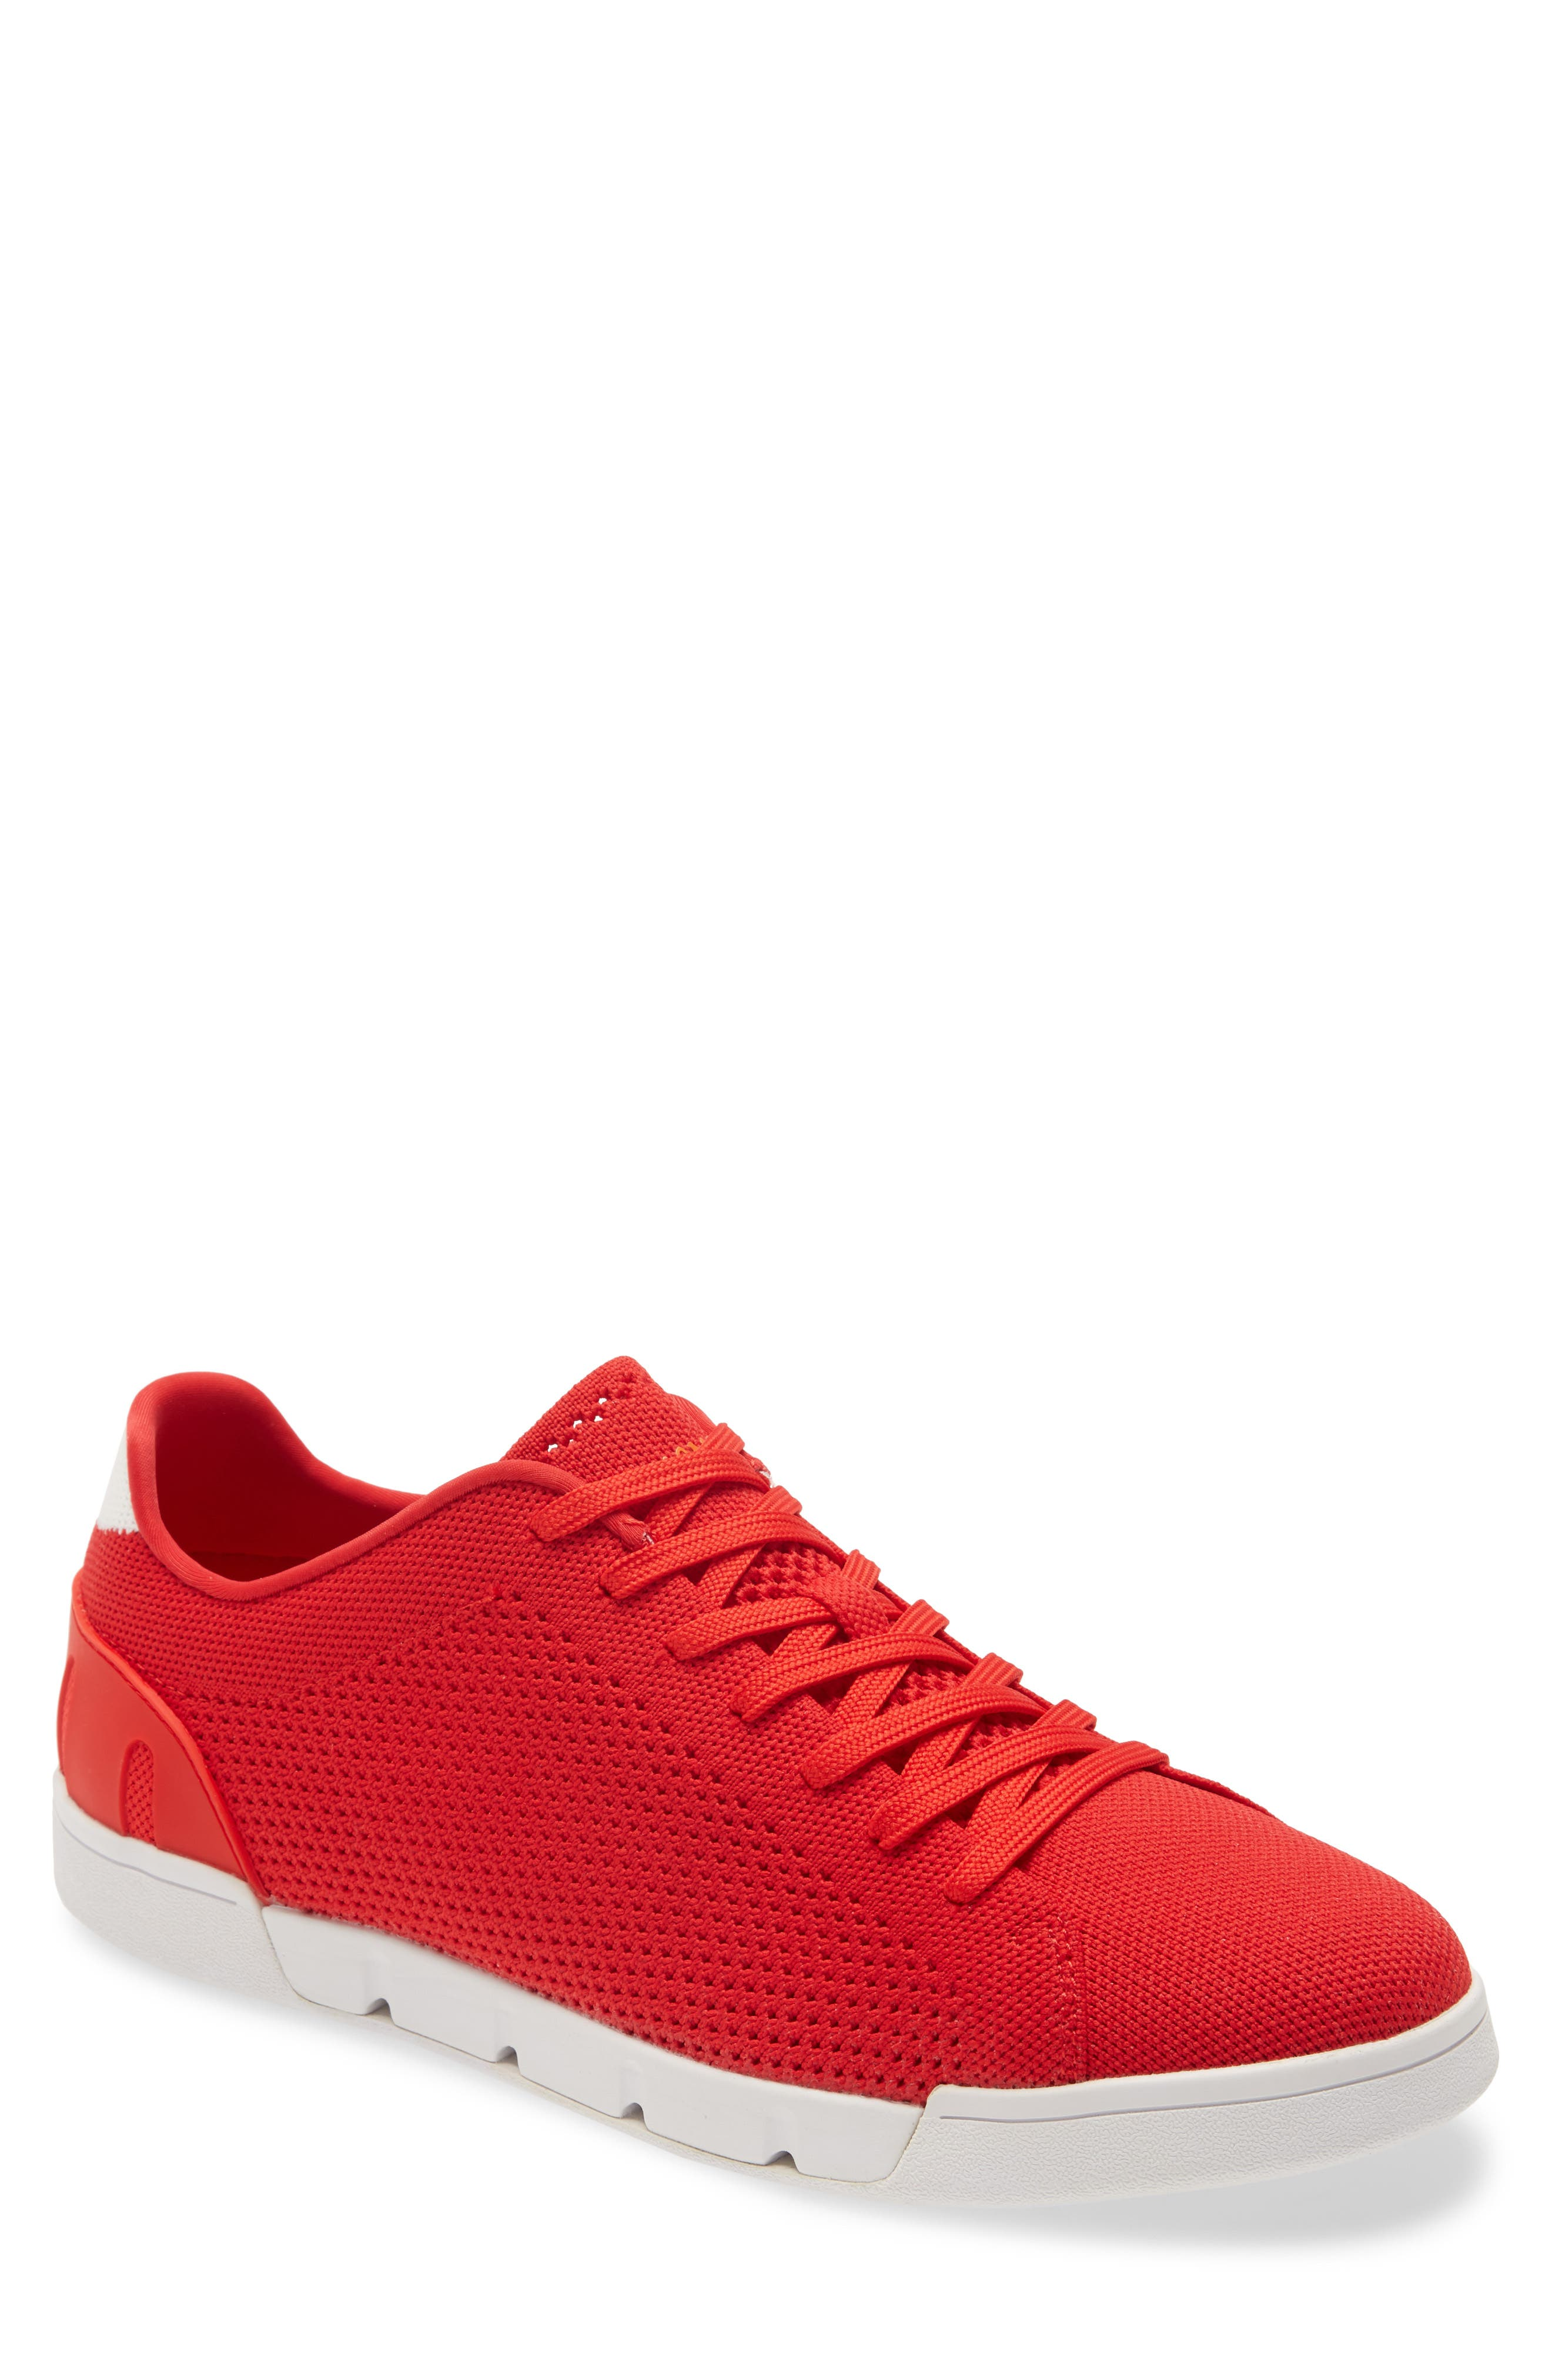 Image of Swims Breeze Knit Tennis Sneaker